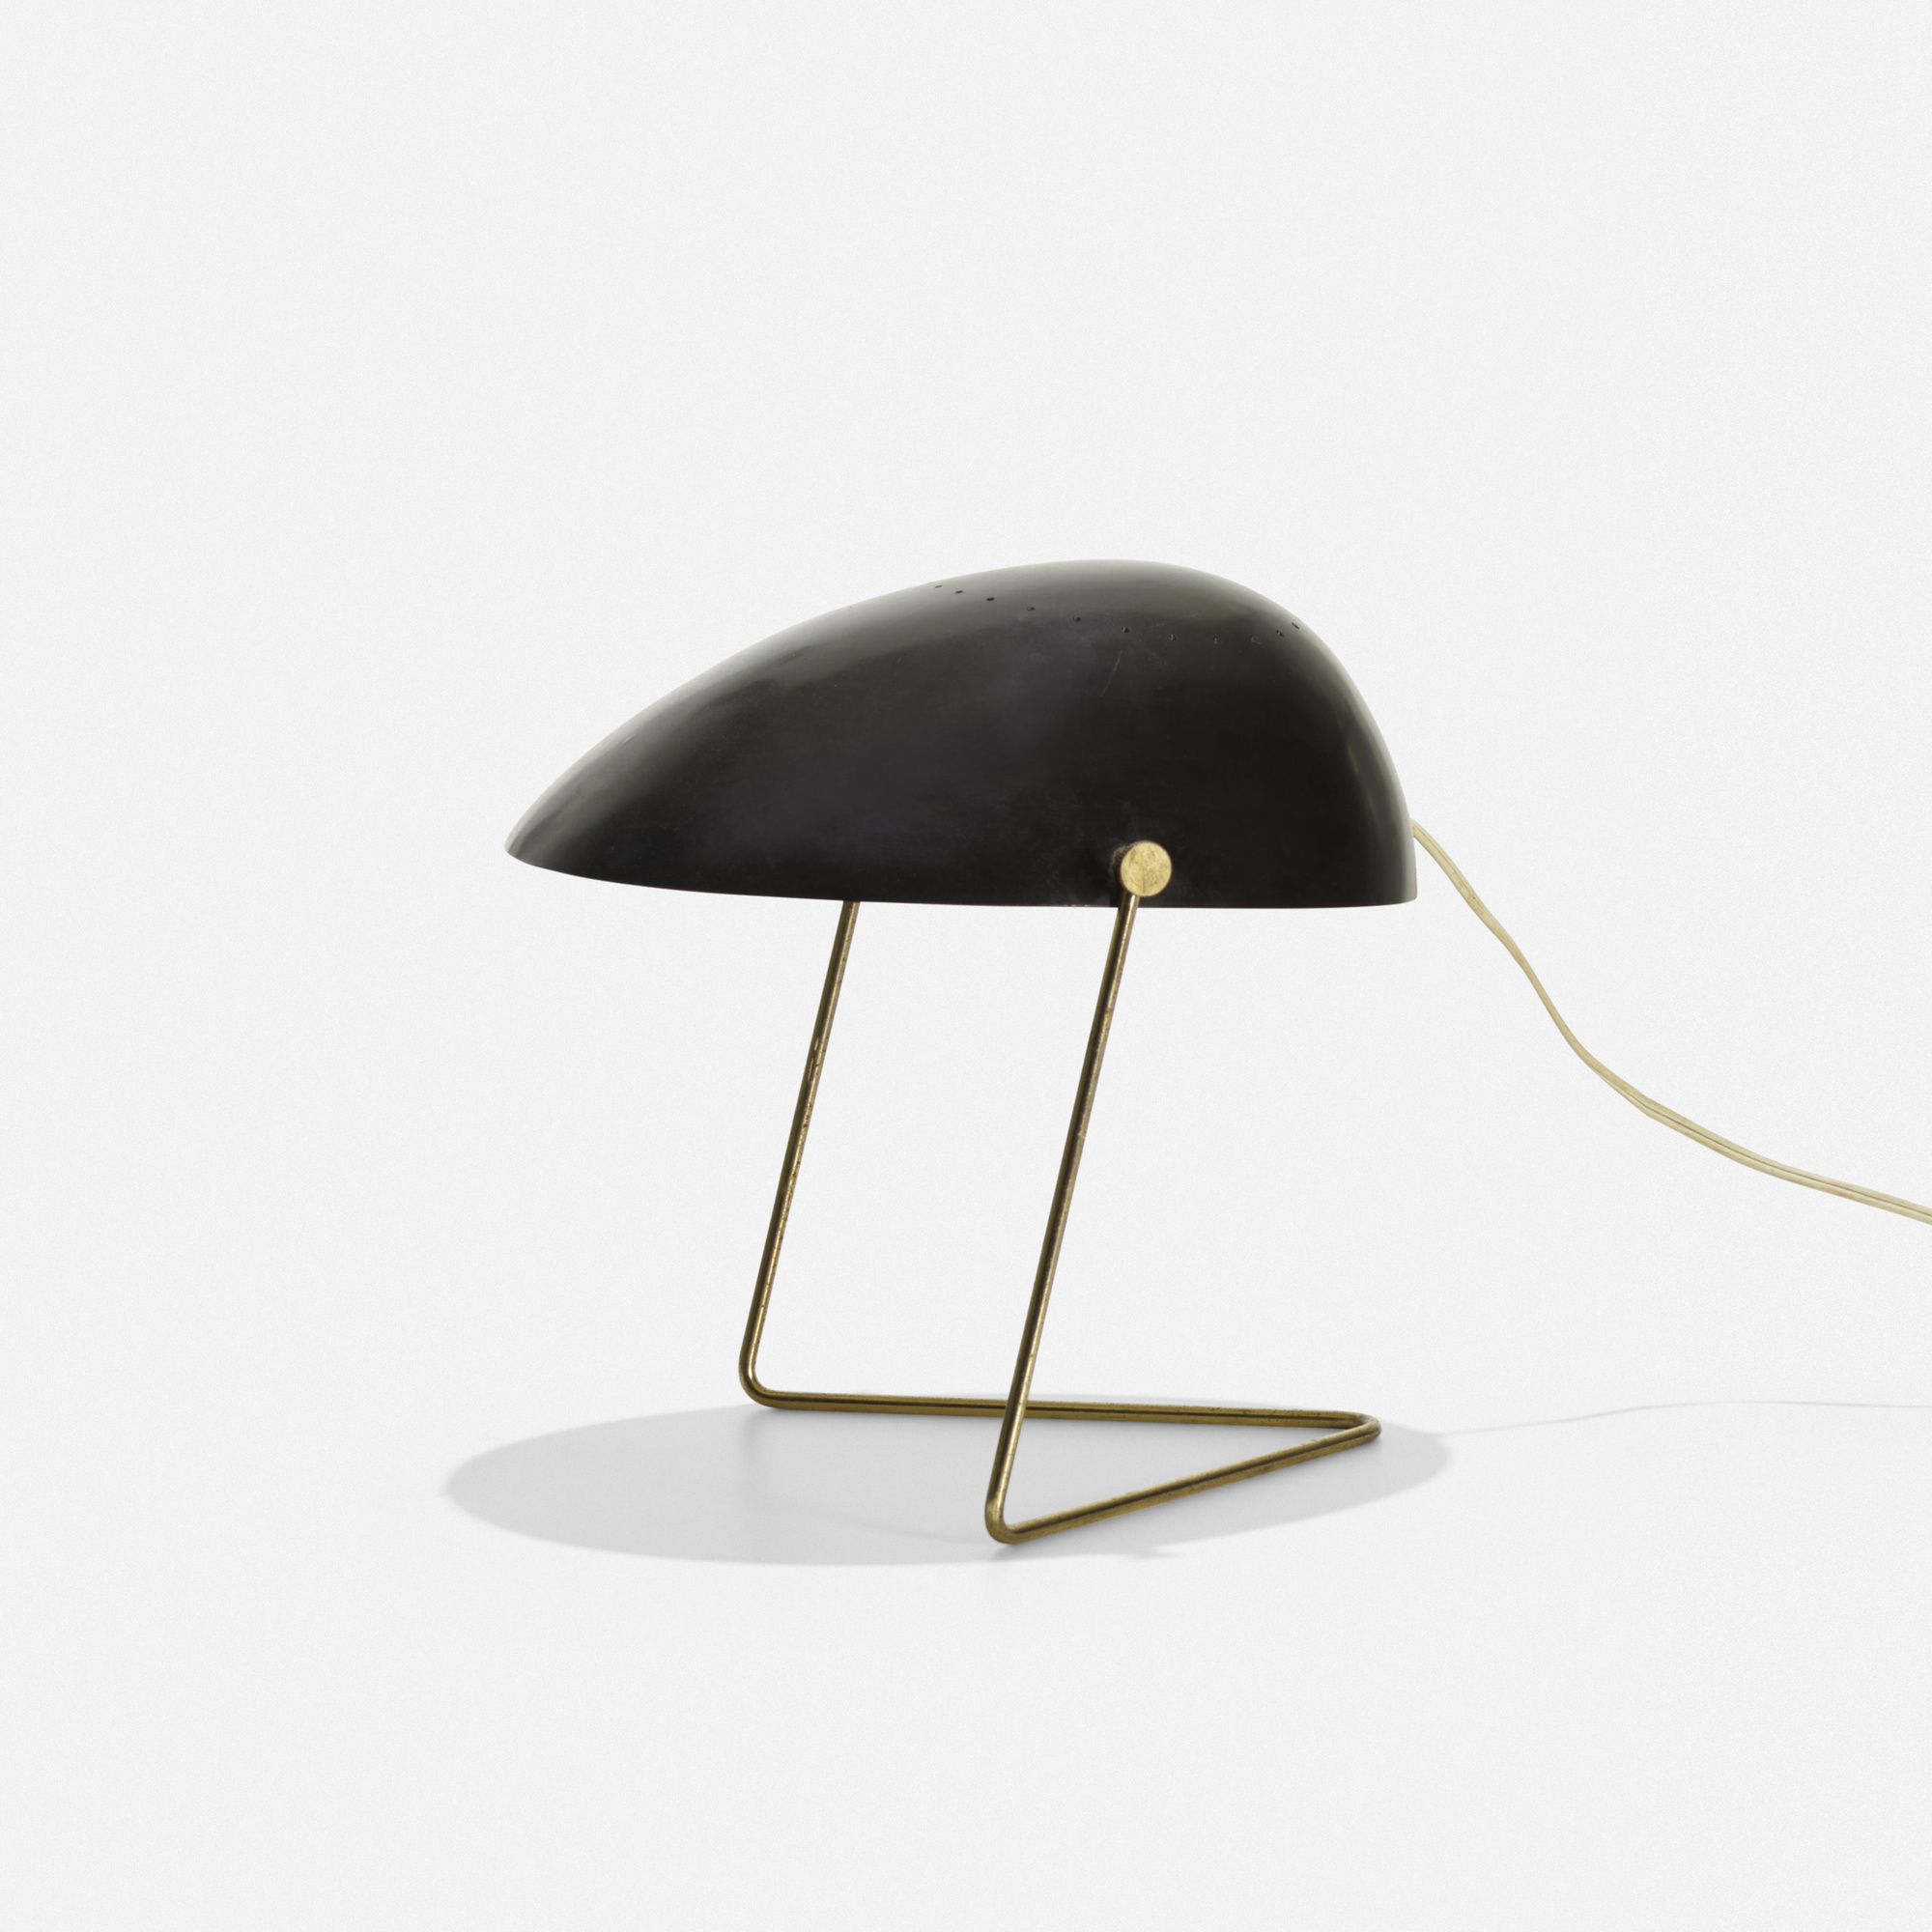 186: Gerald Thurston / table lamp (1 of 2)